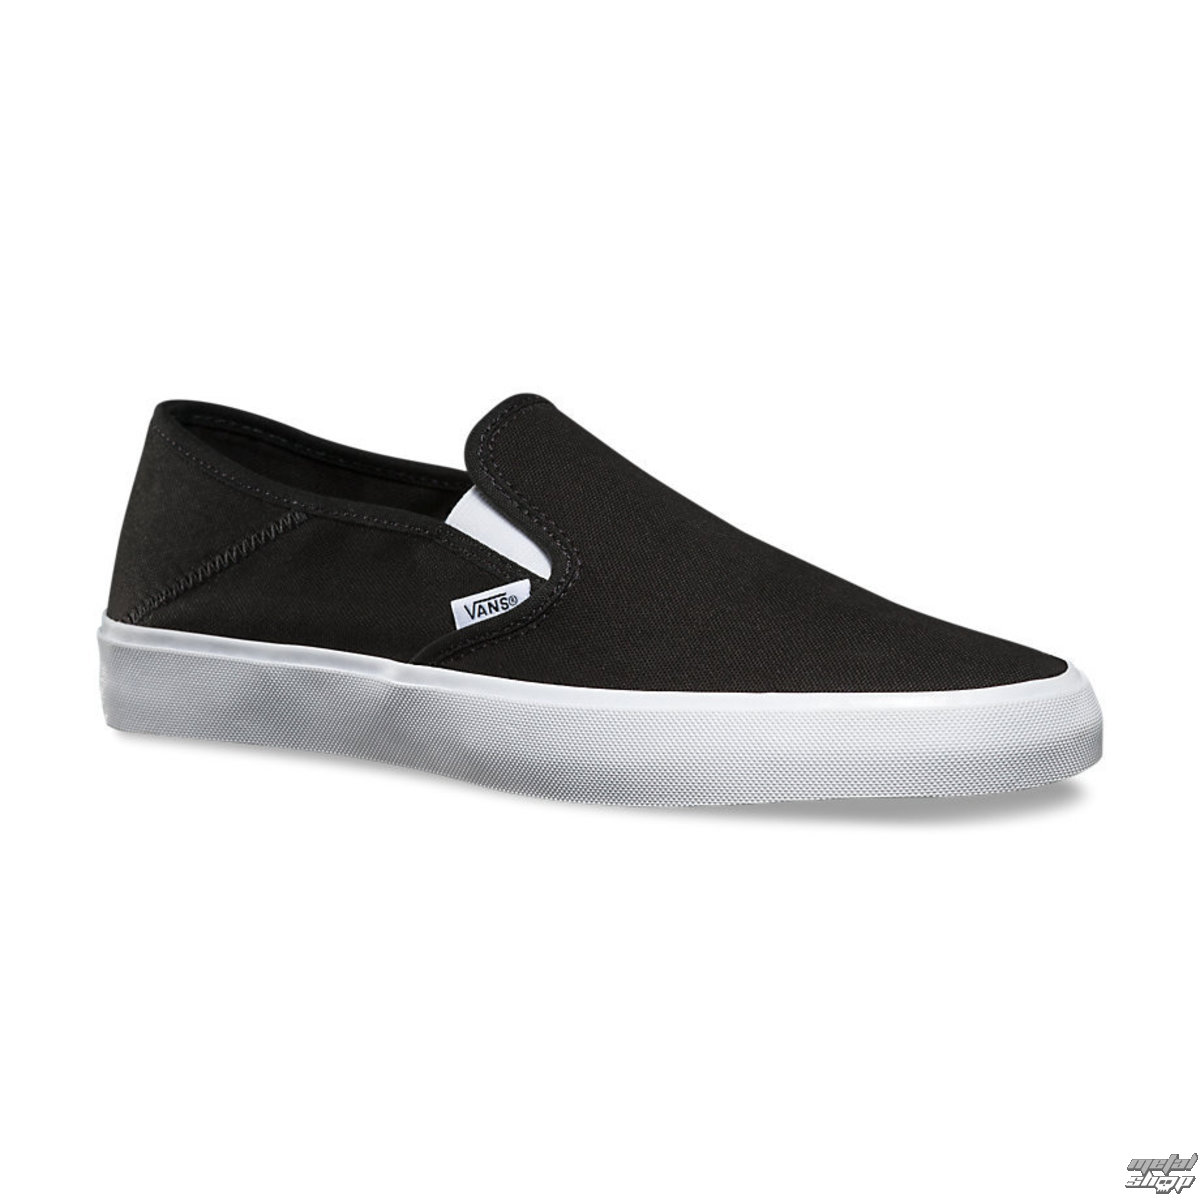 boty VANS - Slip-On SF - Black/White - V19MY28